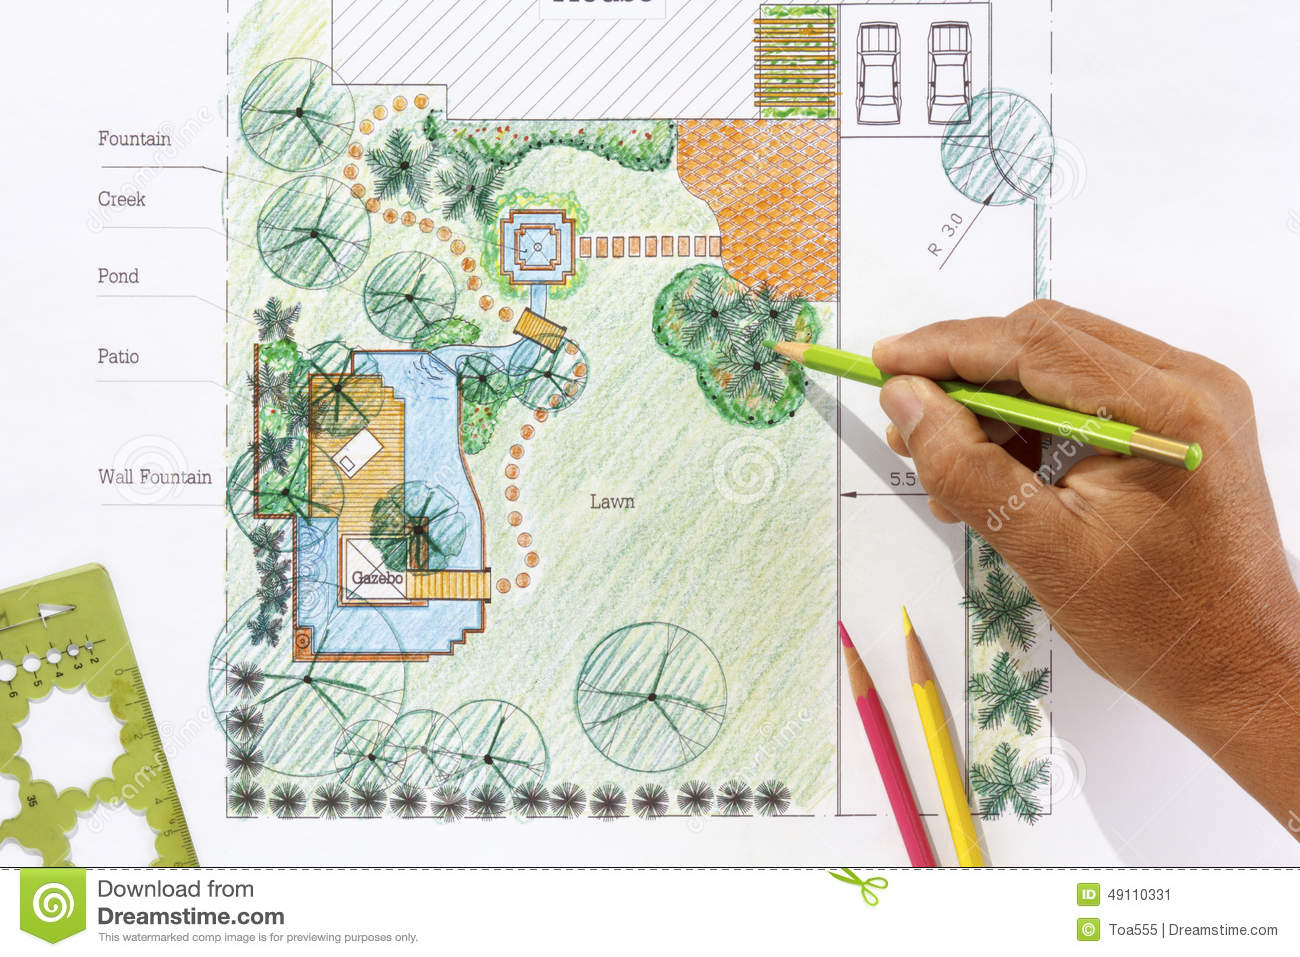 Landscape architect design water garden plans stock photo for Homegardendesignplan